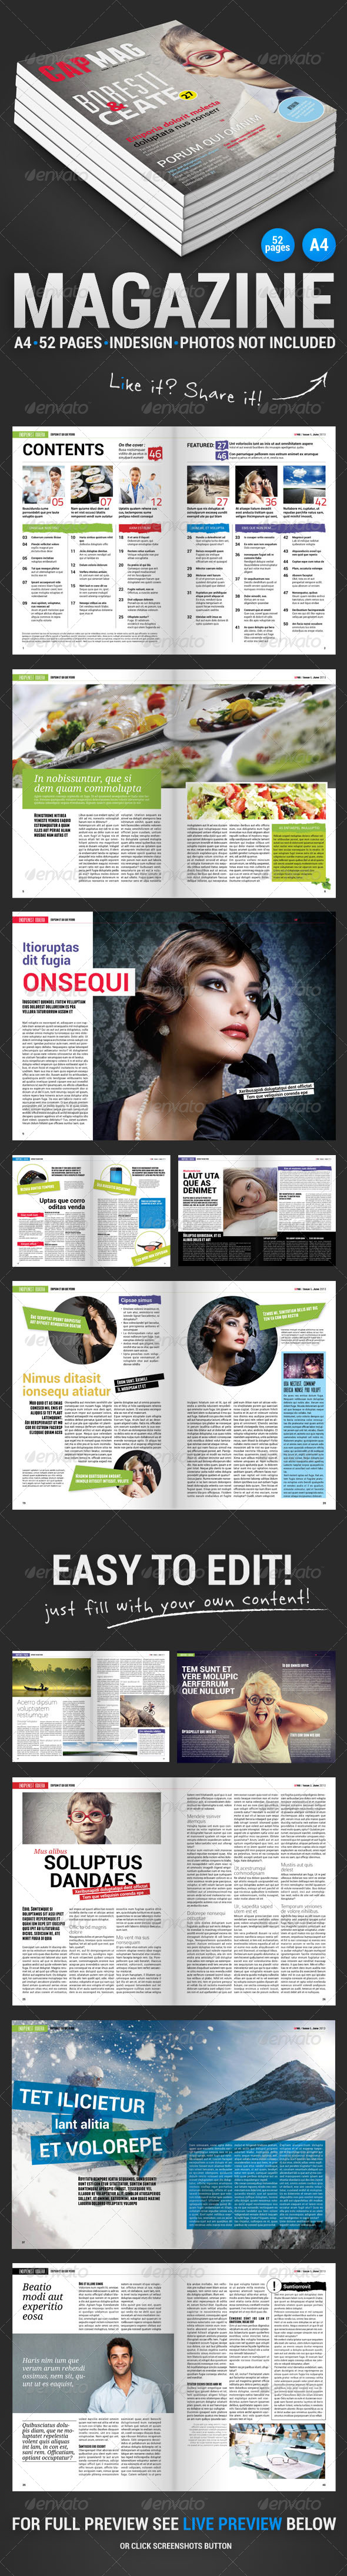 GraphicRiver CapMag 52 Pages Magazine 4708296